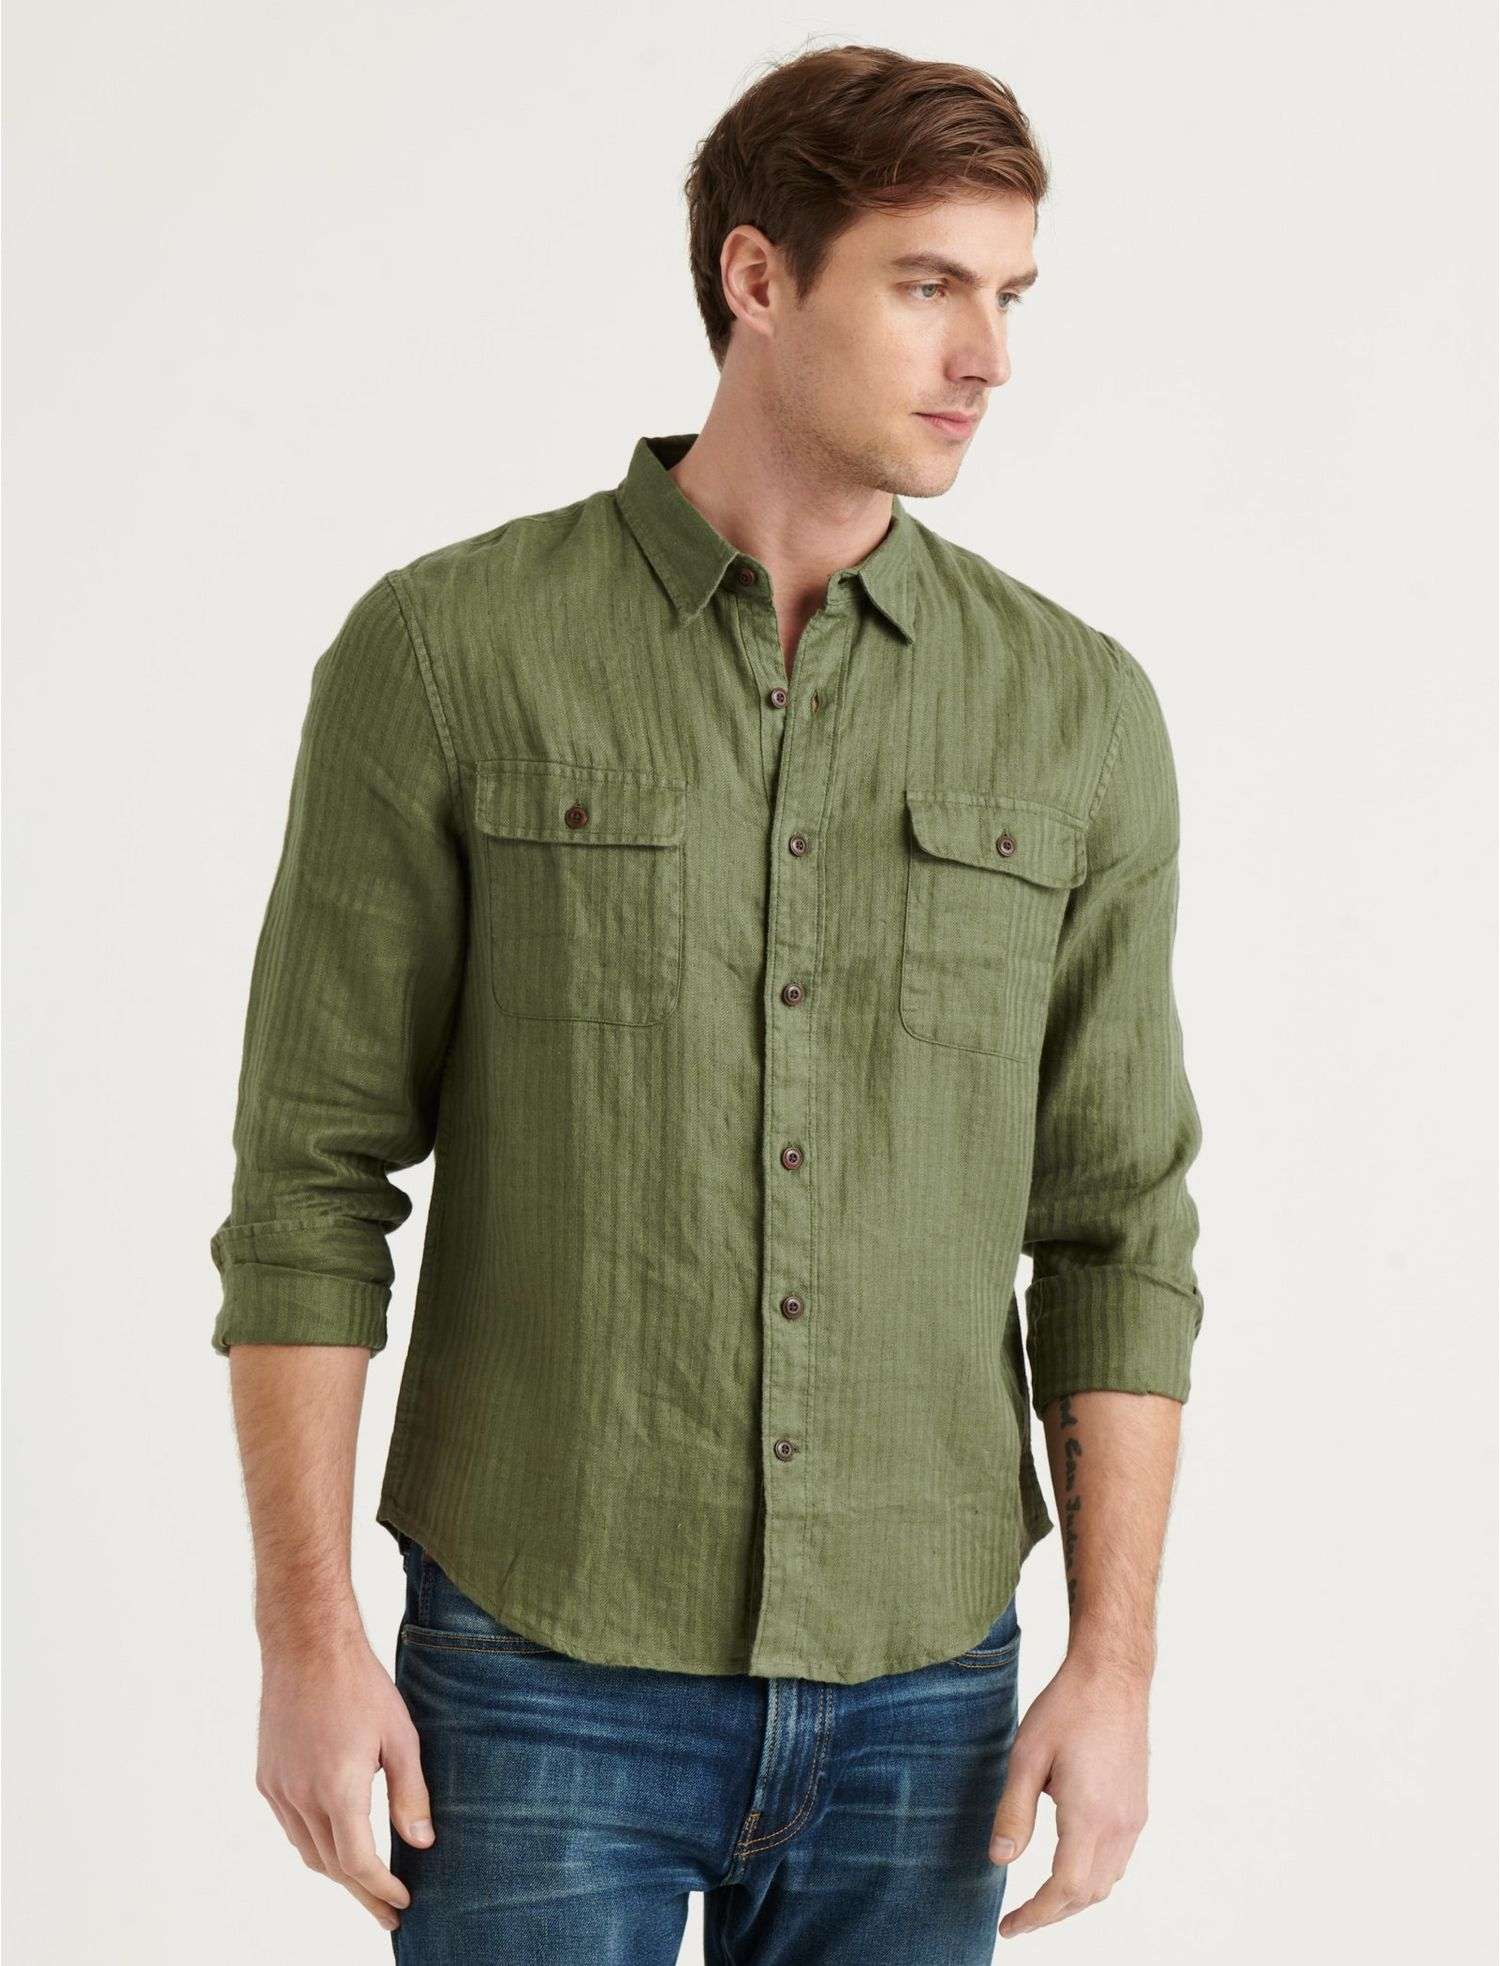 Mens Vintage Shirts – Retro Shirts Lucky Brand Linen Humboldt Workwear Shirt In Olive Size Small $35.00 AT vintagedancer.com